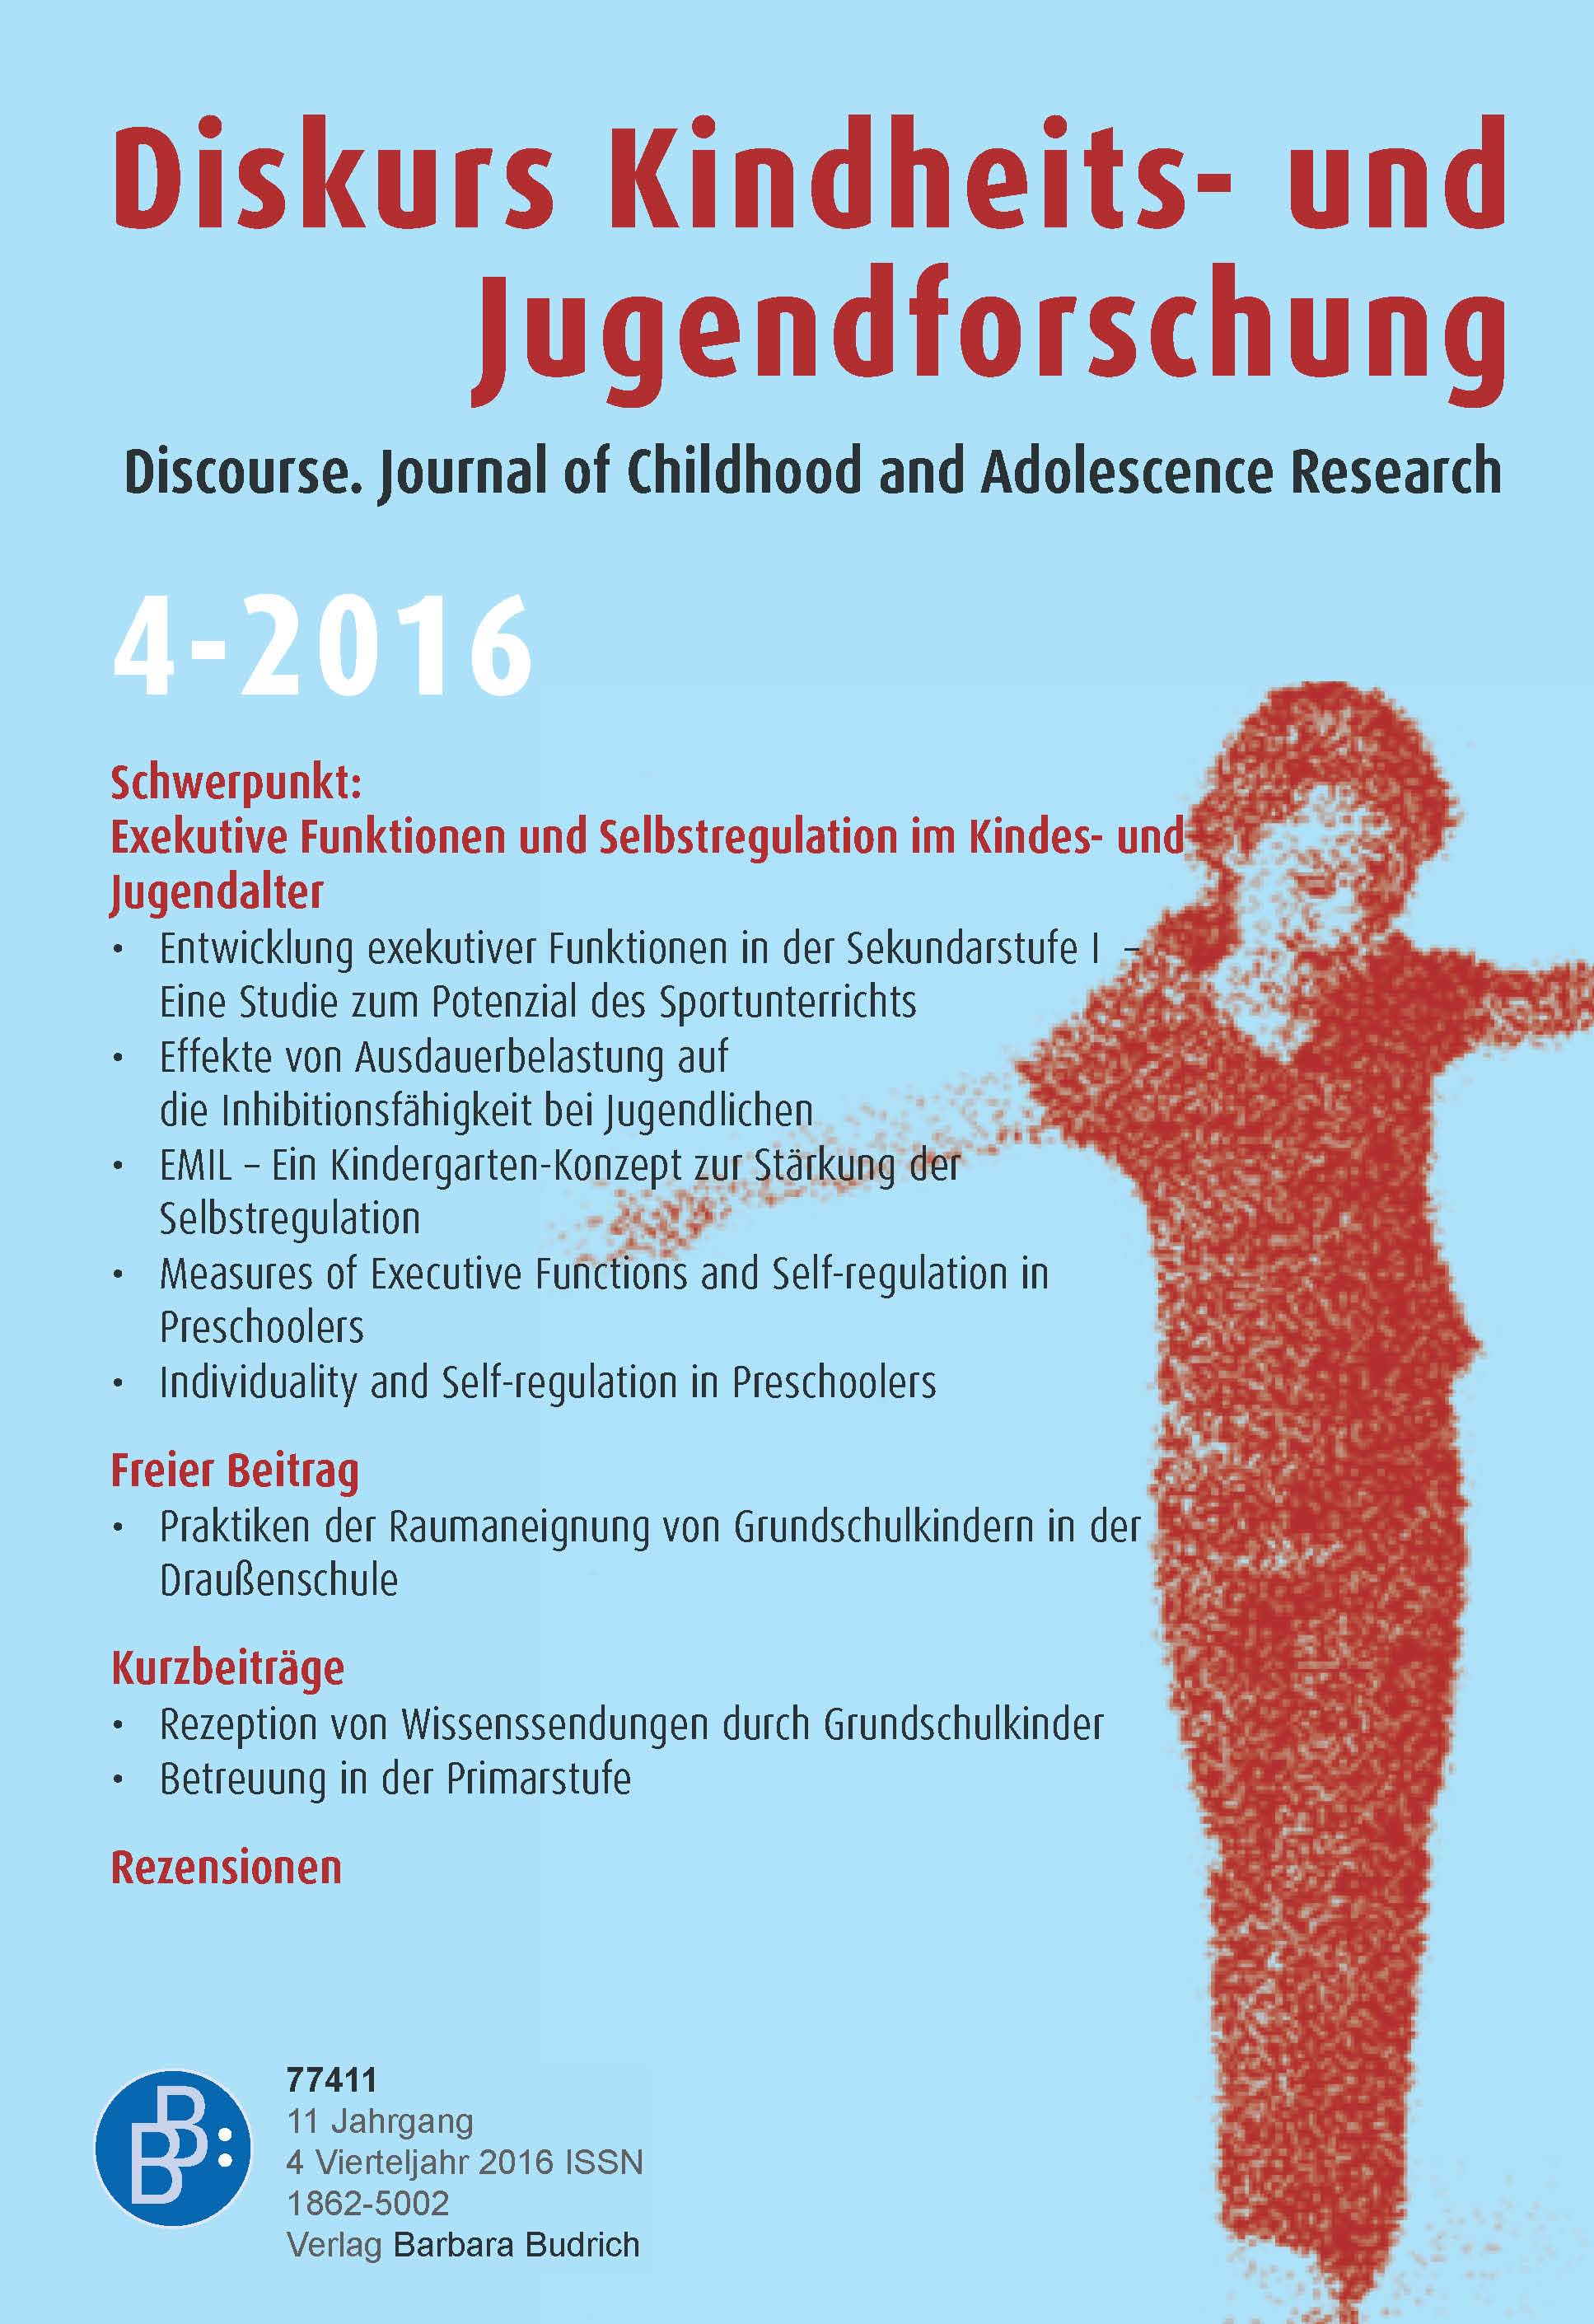 Diskurs Kindheits- und Jugendforschung / Discourse. Journal of Childhood and Adolescence Research 4-2016: Exekutive Funktionen und Selbstregulation im Kindes- und Jugendalter